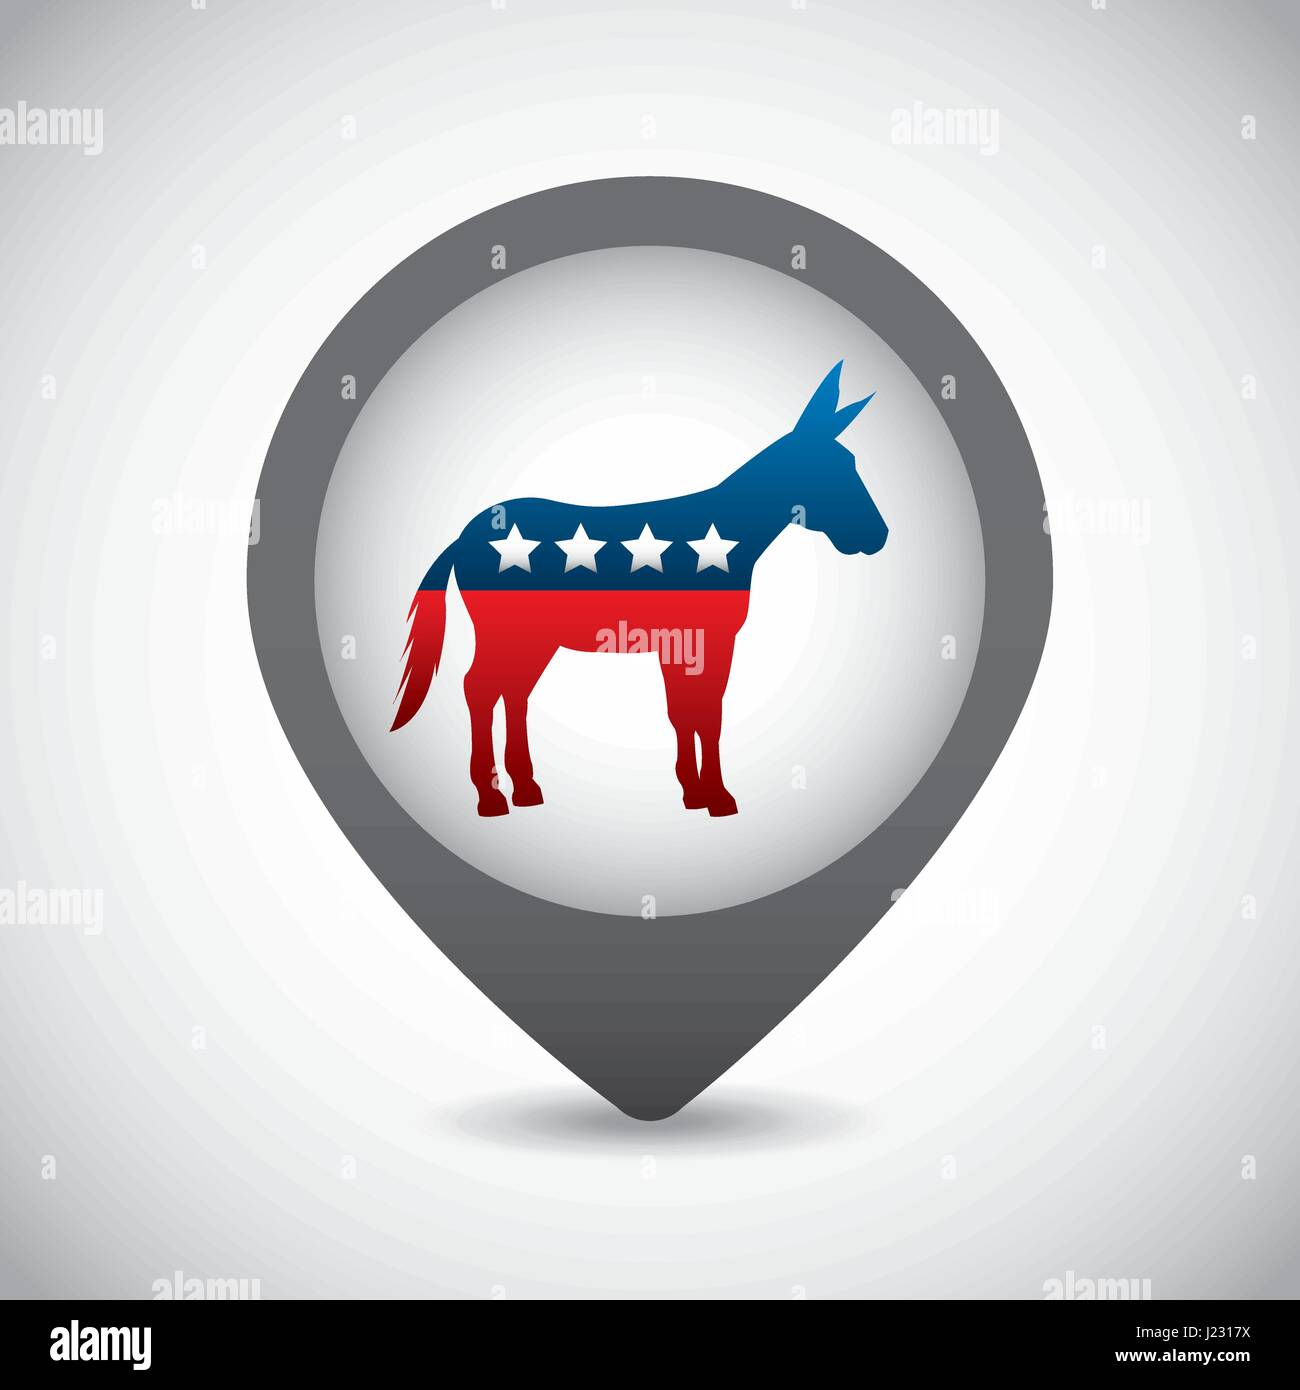 Democrat Donkey Symbol Stock Photos Democrat Donkey Symbol Stock